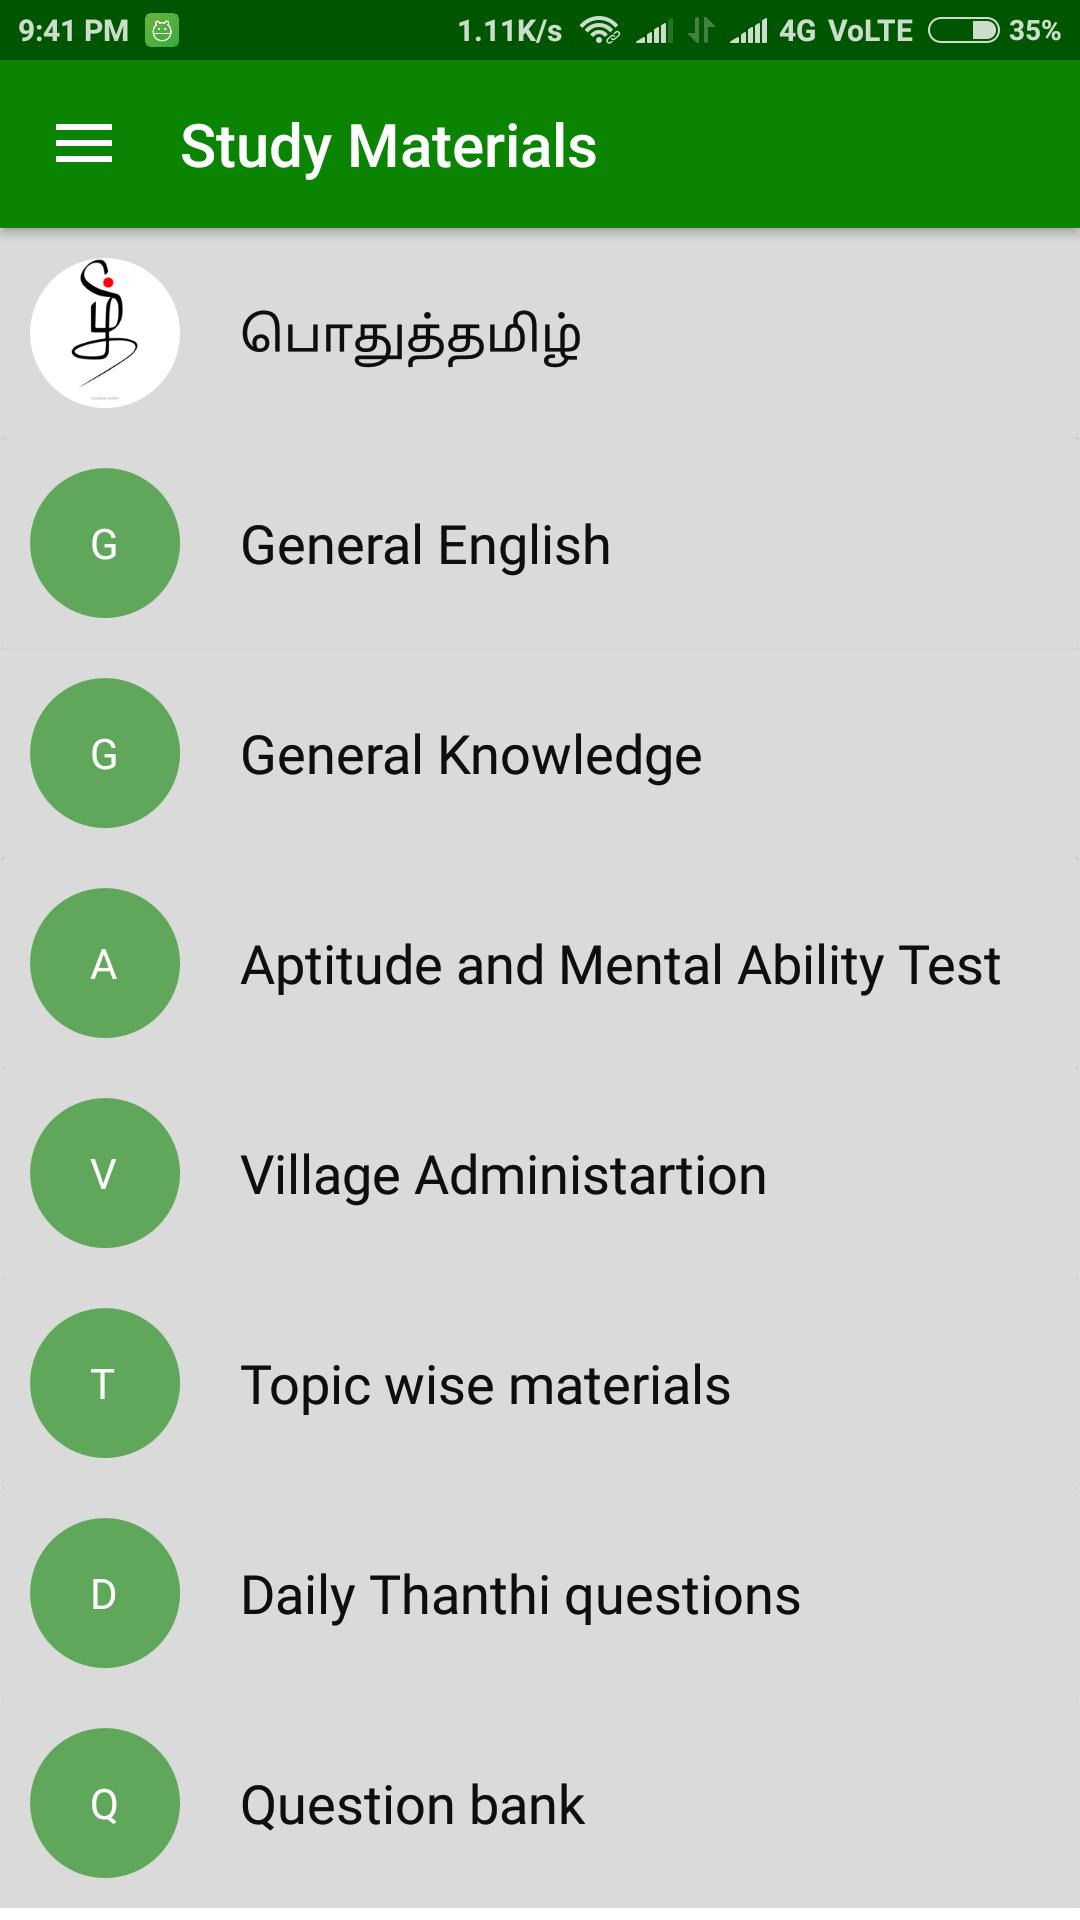 TNPSC CCSE 4 2019 : Group 4 Study Materials VAO for Android